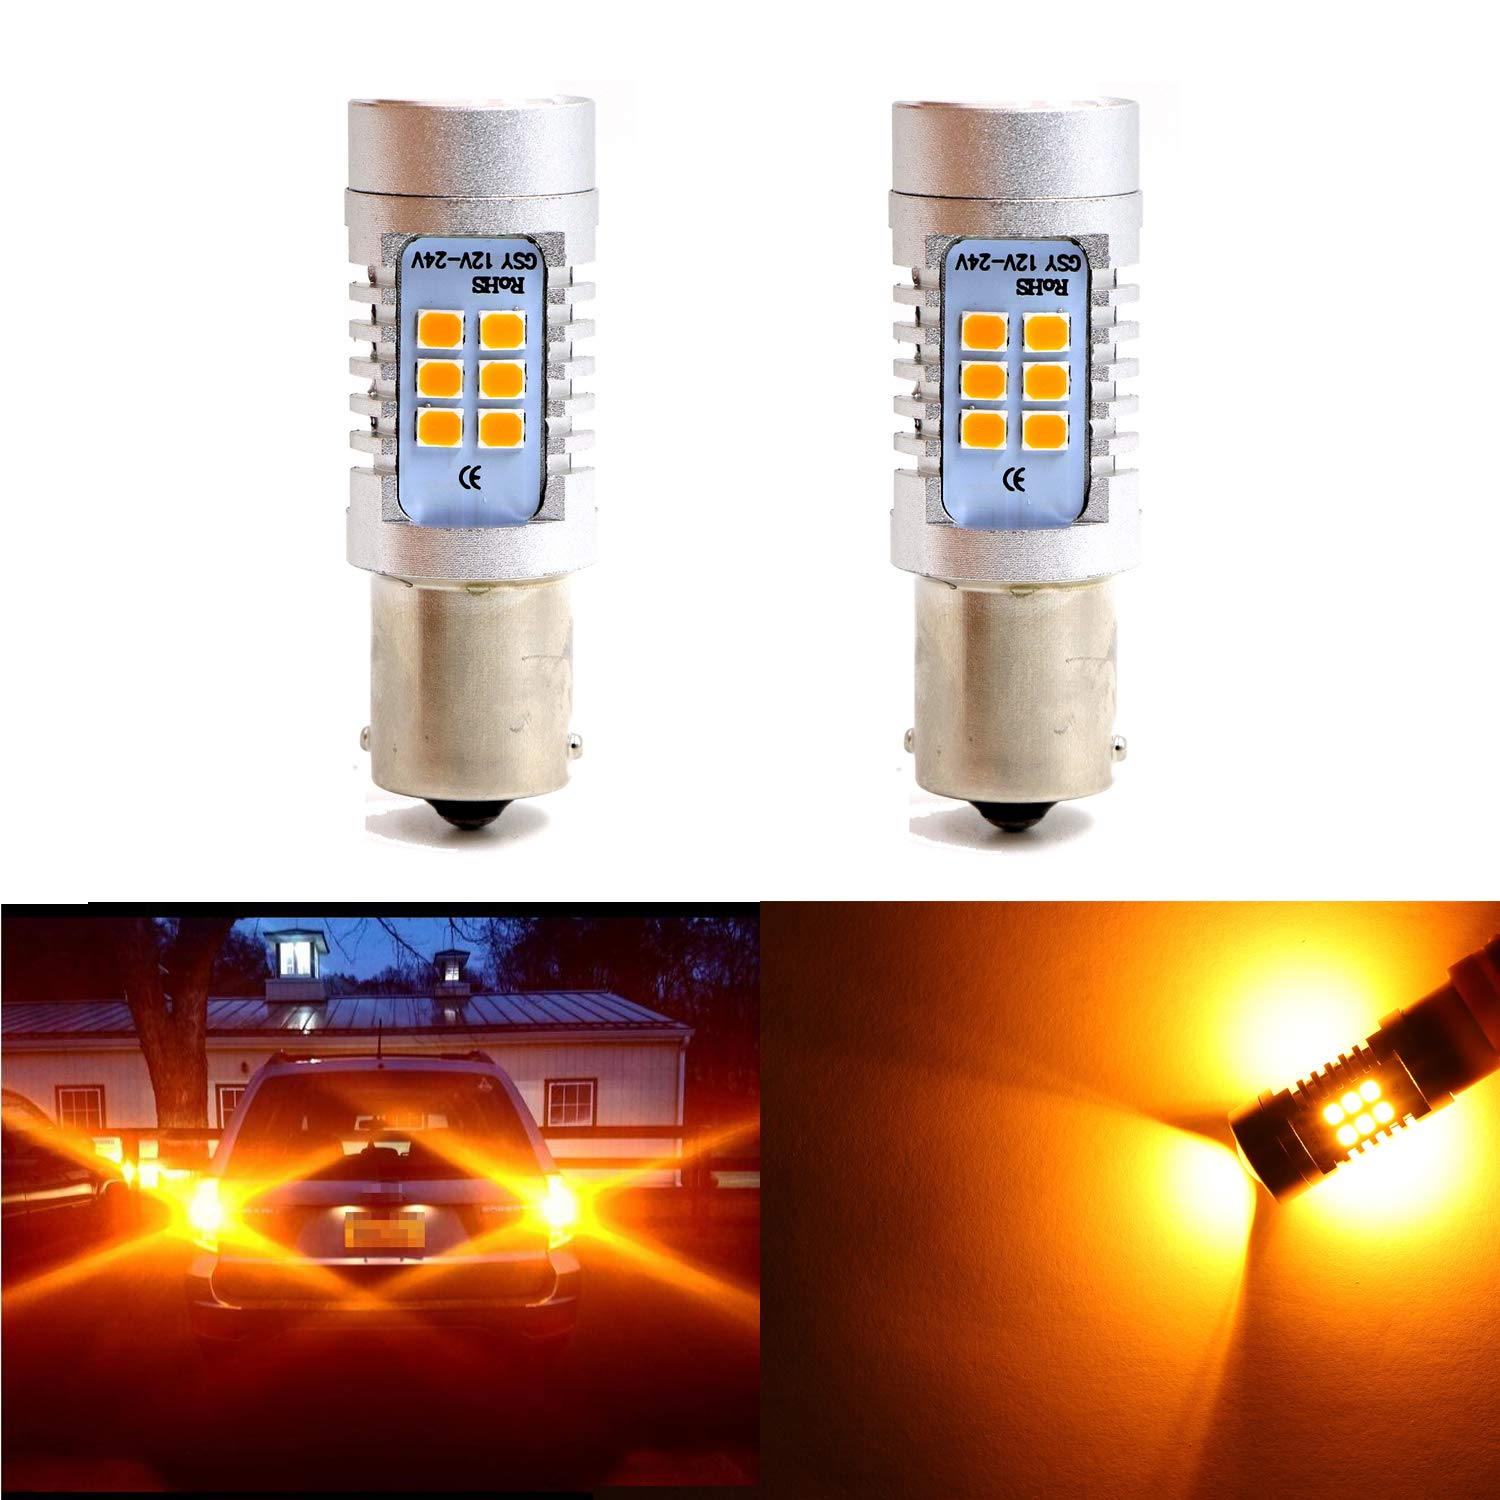 Turn Signal Bulbs 7440 7441 7443 7444, Extremely Bright Amber Yellow Light w/21 SMD LED Bulbs for Turn Signal Blinker Lights, Sidemarker Lights, Corner Lights (Pack of 2) Youxmoto